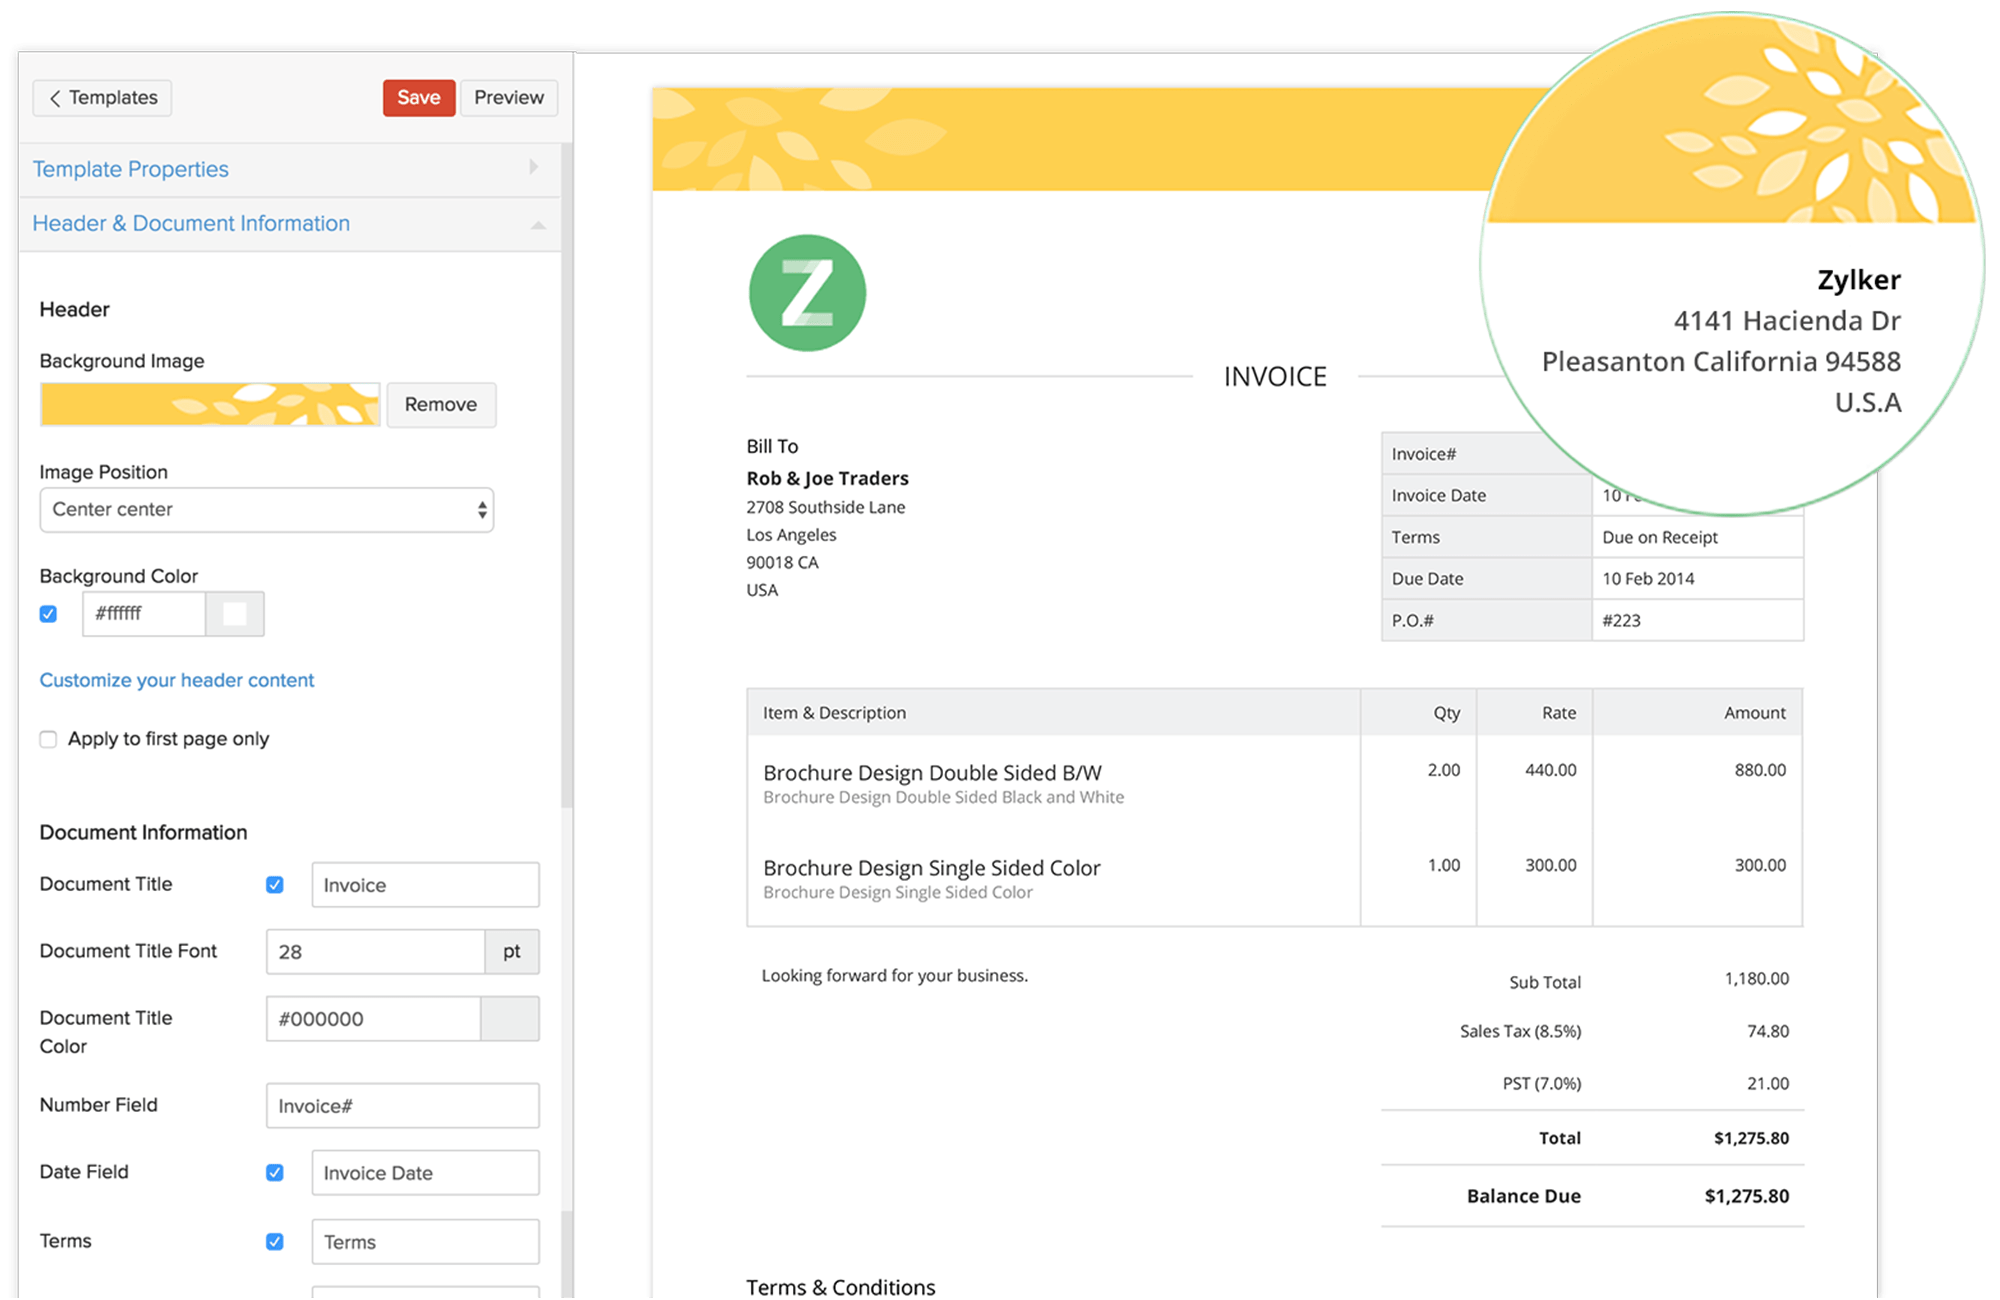 Invoice Templates From Zoho InvoiceCustomise Your Invoices - Invoice design template